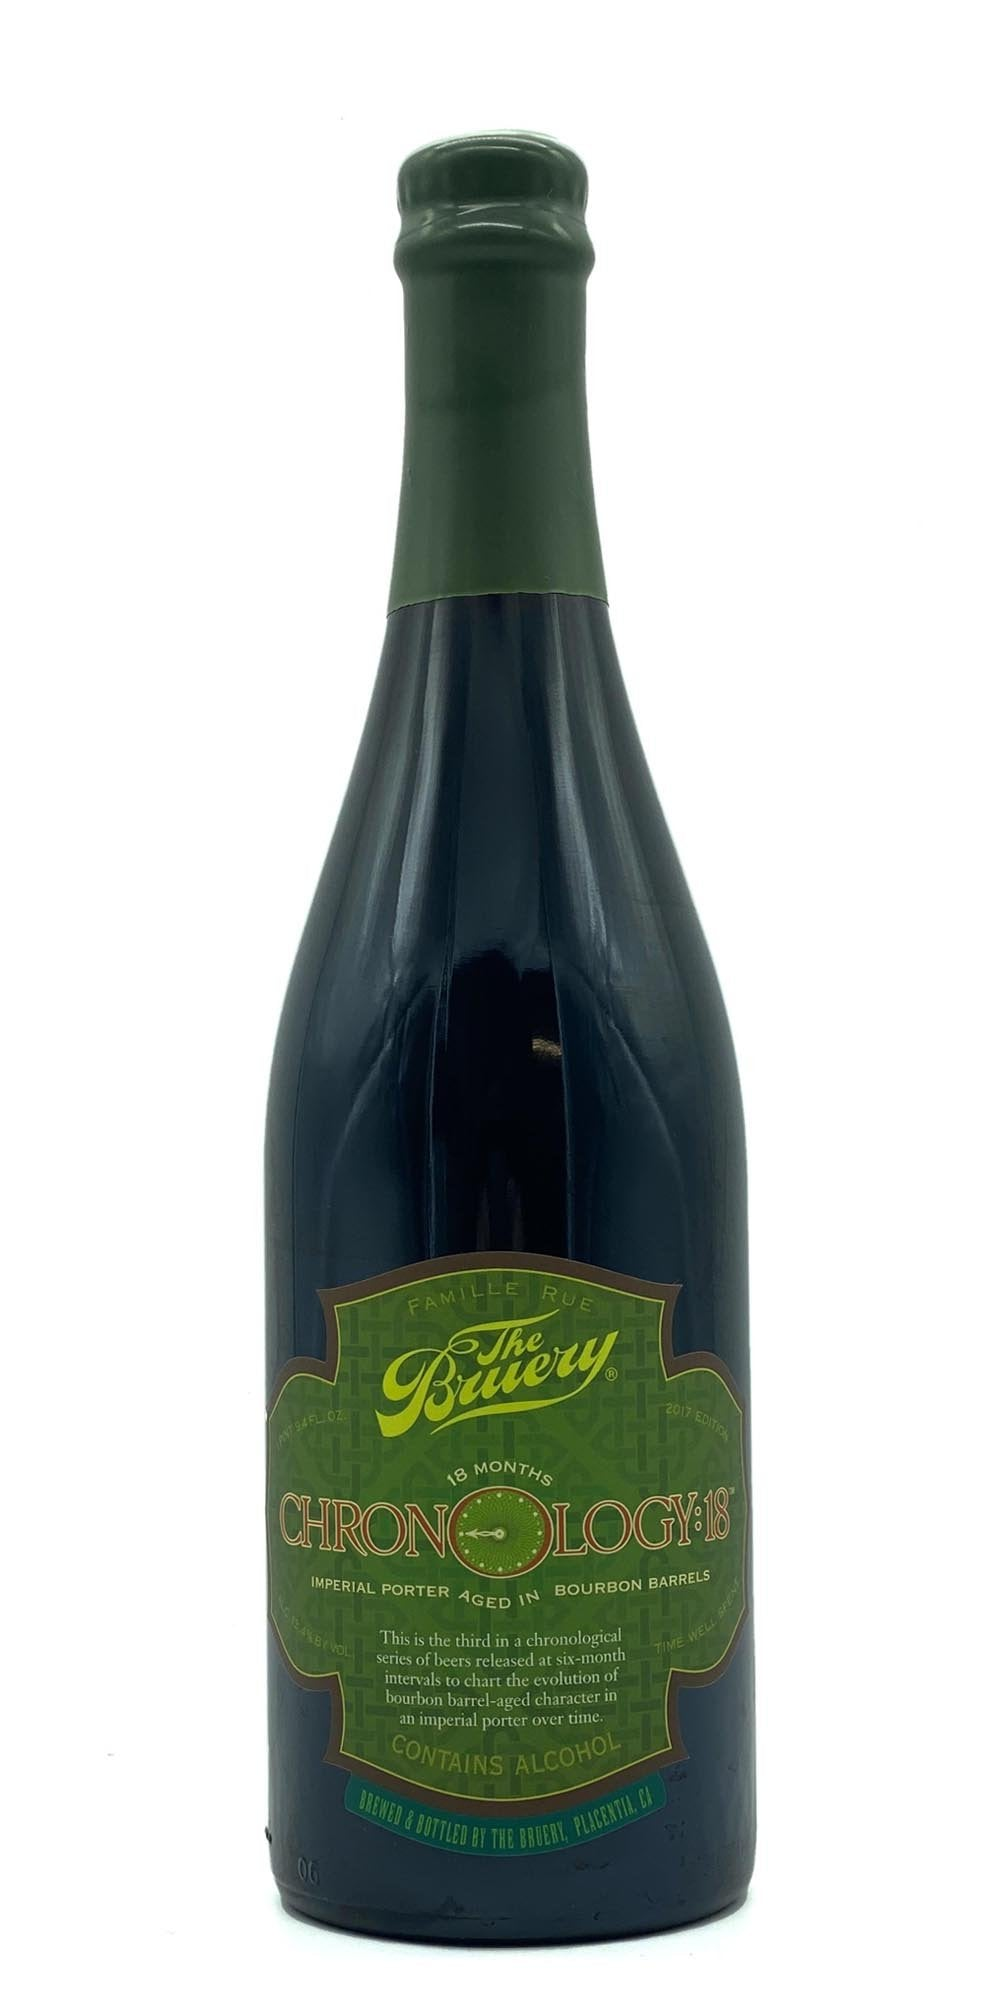 The Bruery - Chronology: 18 - Imperial Porter 2017